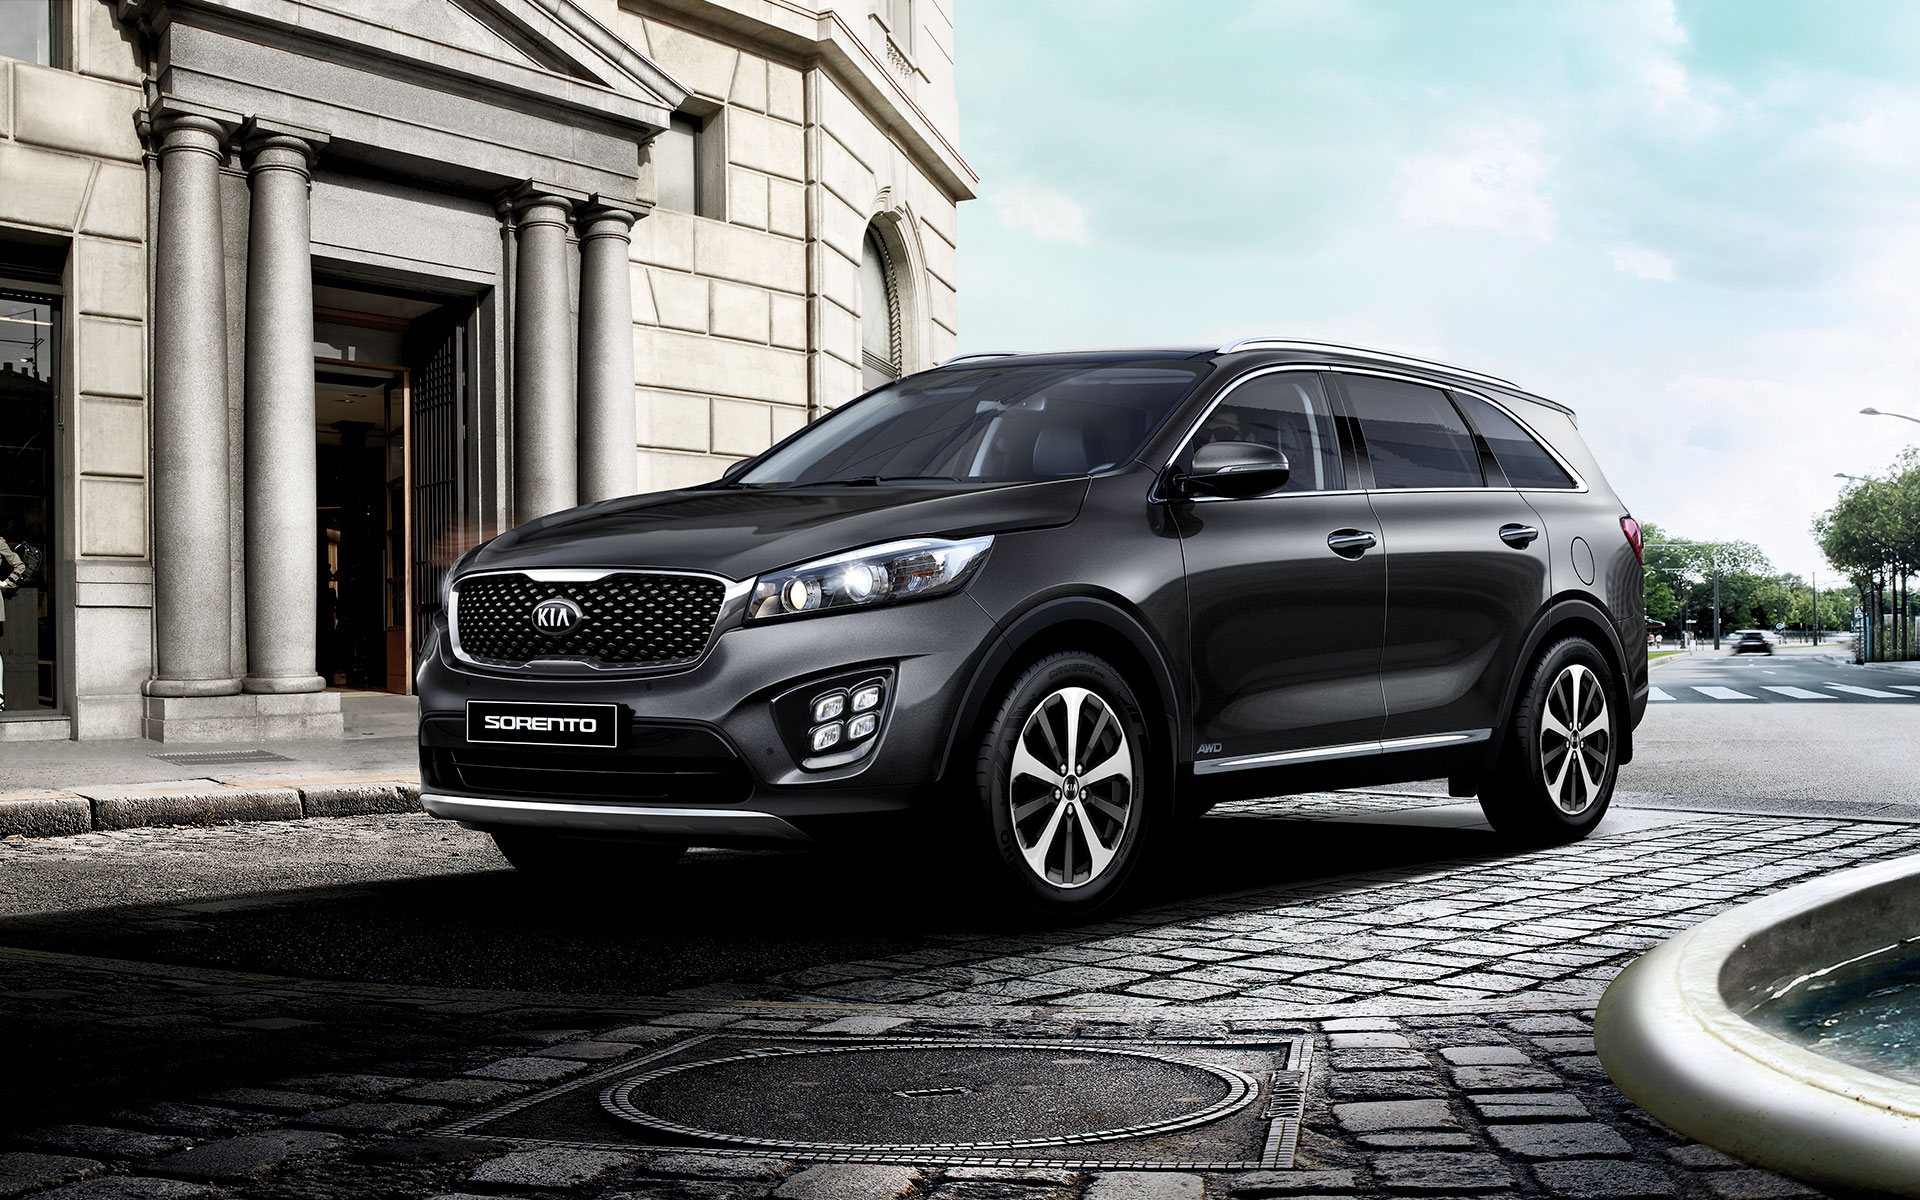 showroom kia sorento 2018 kia motors m xico. Black Bedroom Furniture Sets. Home Design Ideas